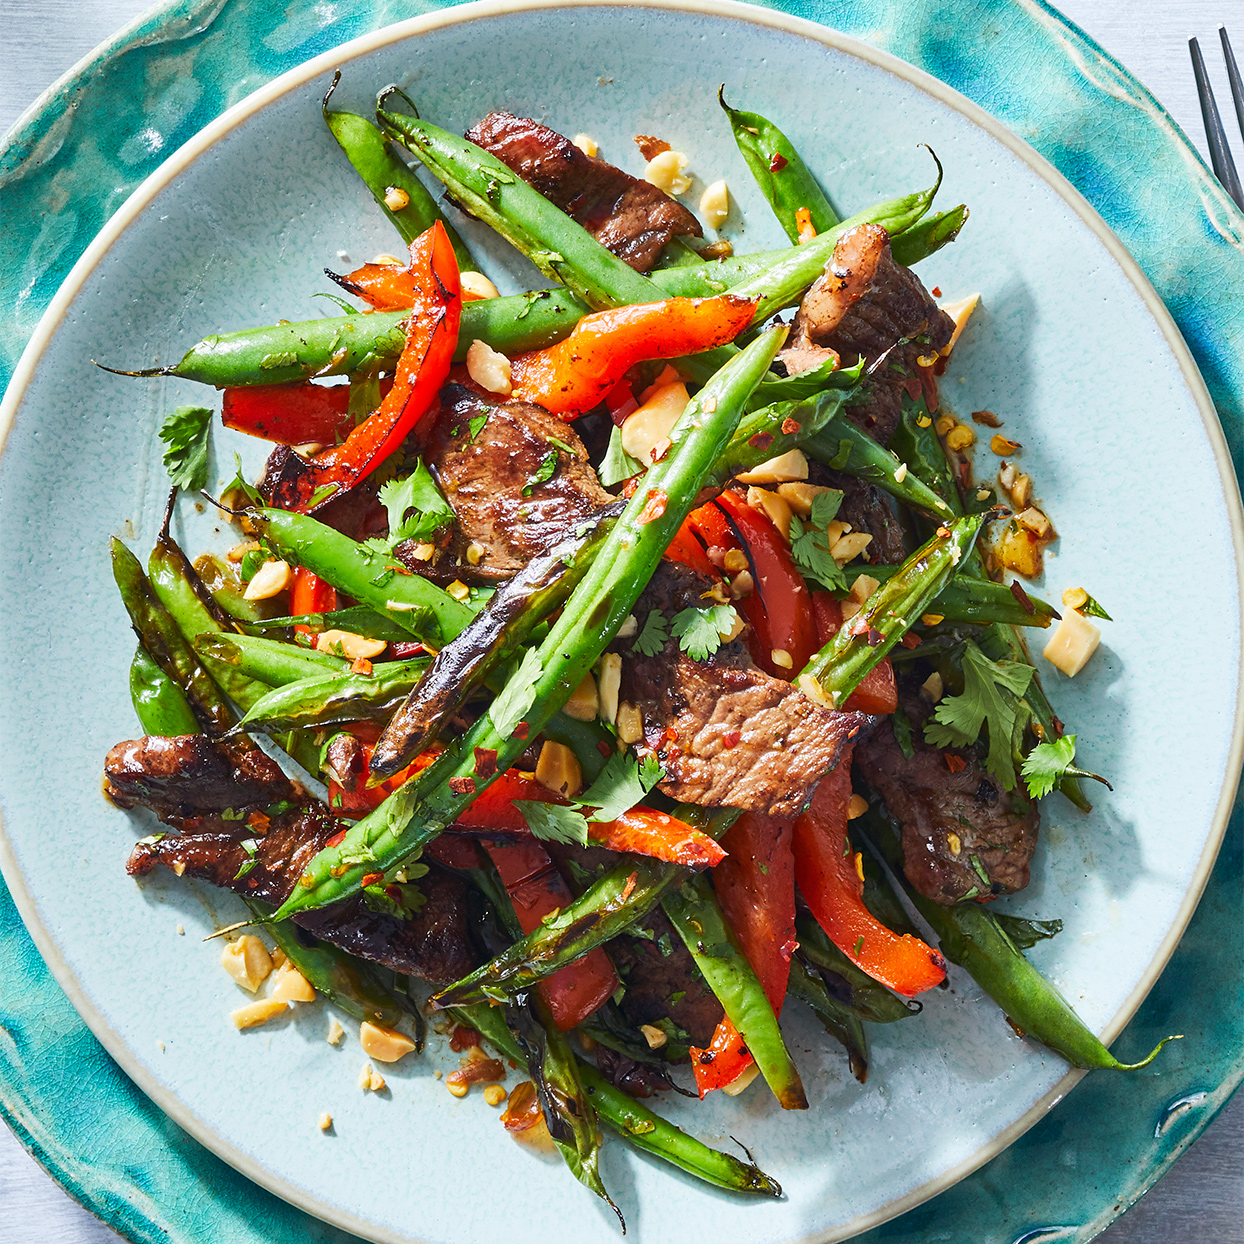 Stir-Fried Green Beans with Steak & Peanuts